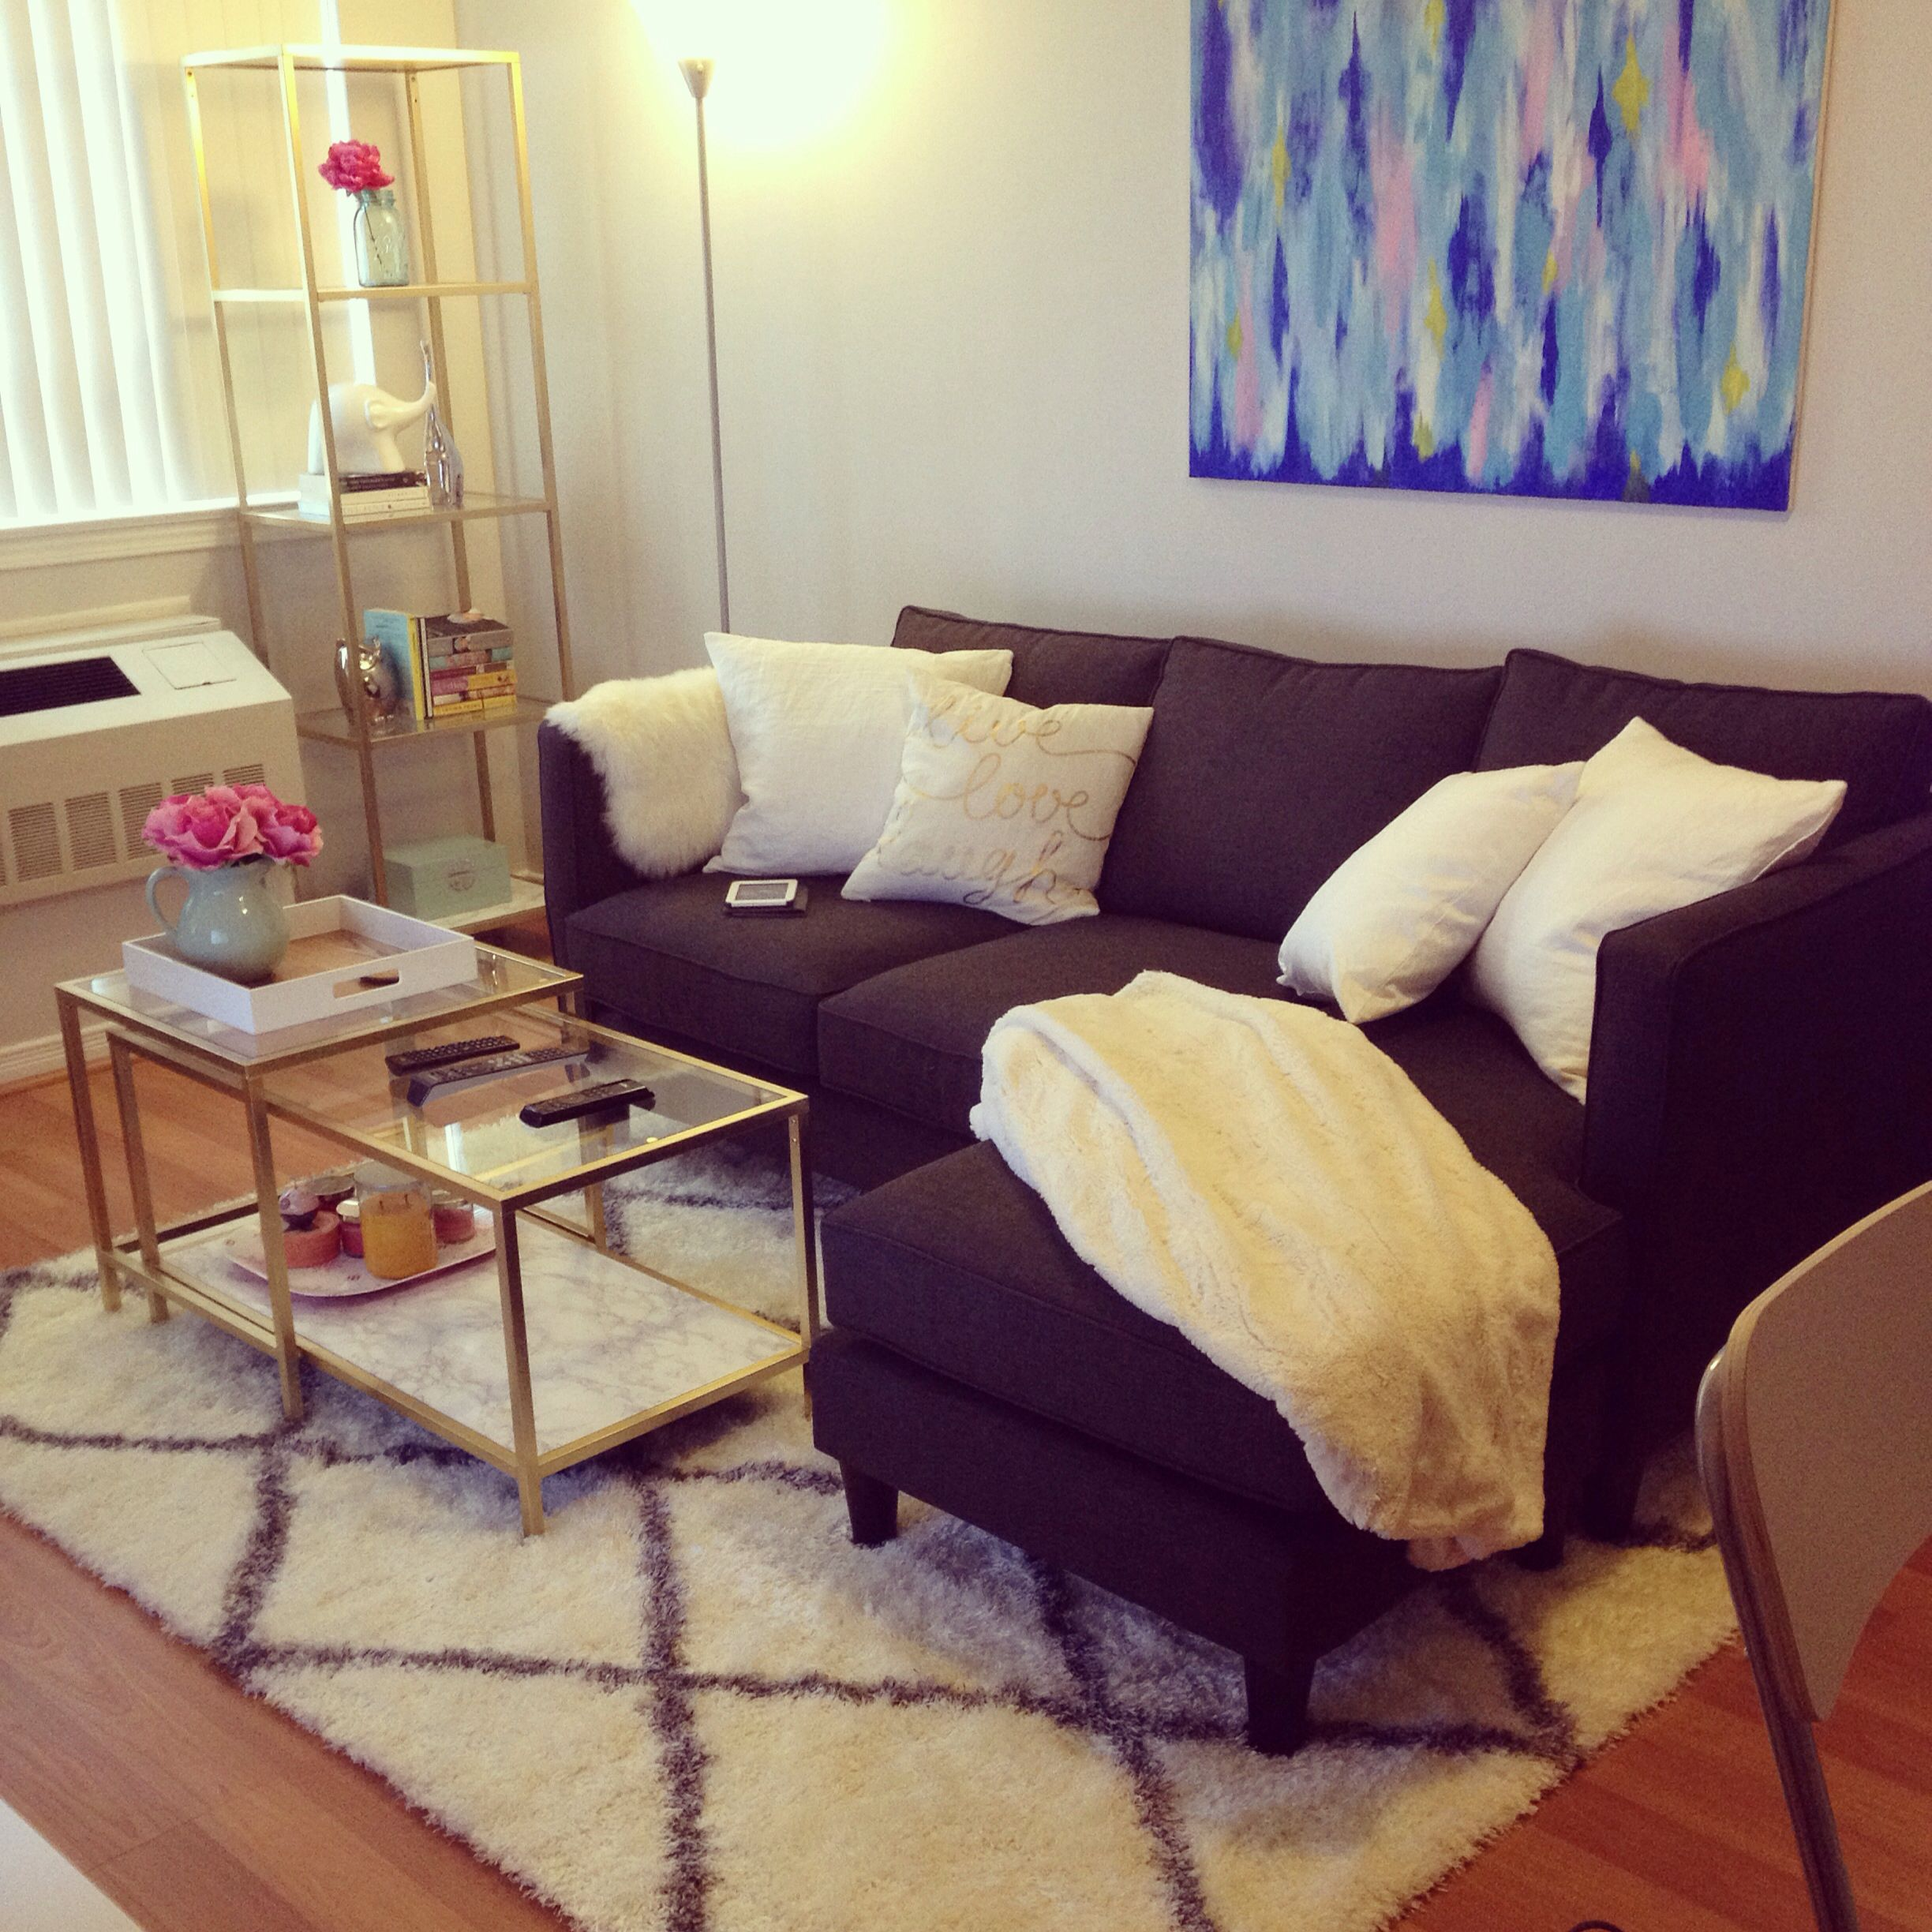 My Tiny Living Room Ikea Hack Vittsjo Coffee Table And Shelf Couch From Urba Living Room Decor On A Budget Apartment Decorating Living Minimalist Living Room